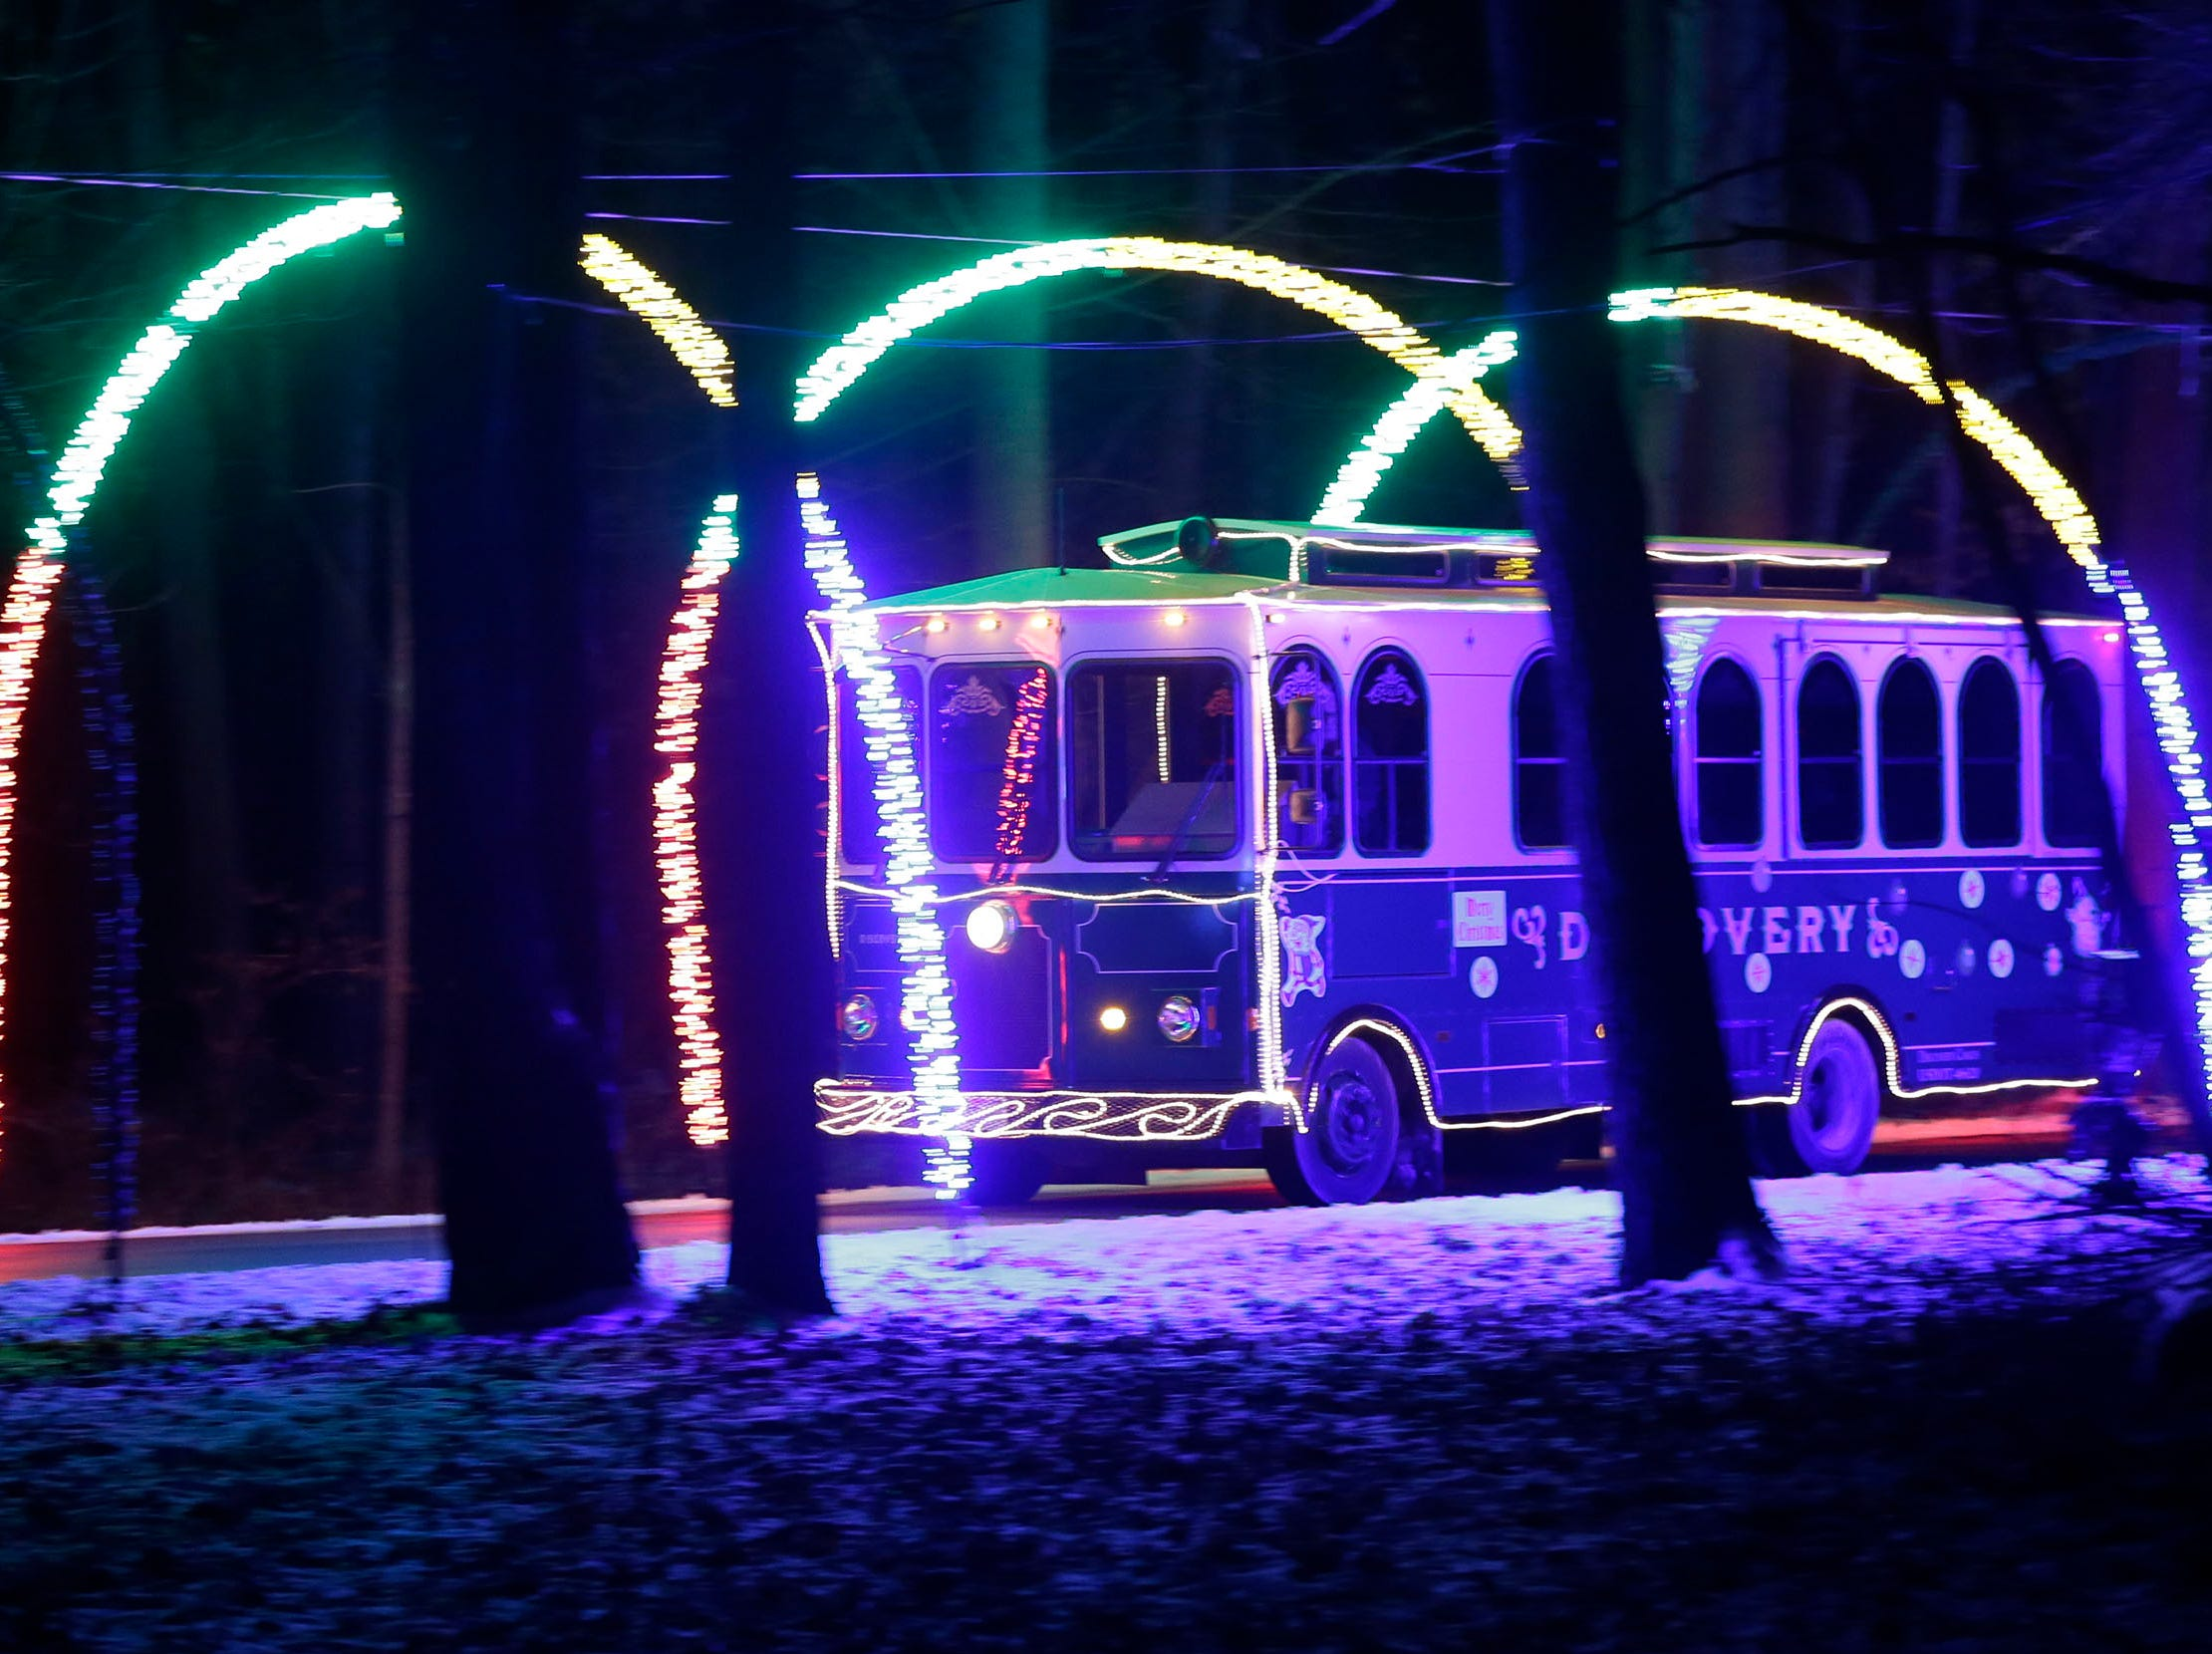 The Trolley goes through the tunnel of light at Making Spirits Bright at Evergreen Park, Friday, November 30, 2018, in Sheboygan, Wis.